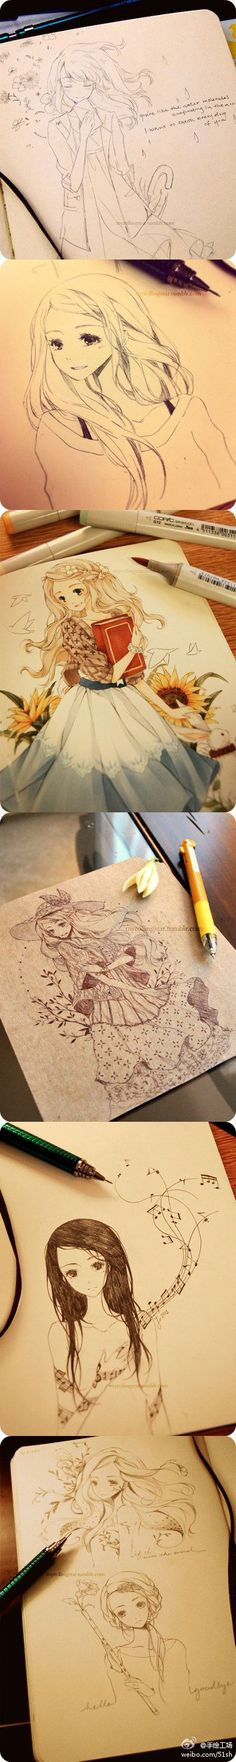 ✮ ANIME ART ✮ anime girls. . .drawing. . .doodle. . .work in progress. . .pen. . .marker. . .cute. . .kawaii: